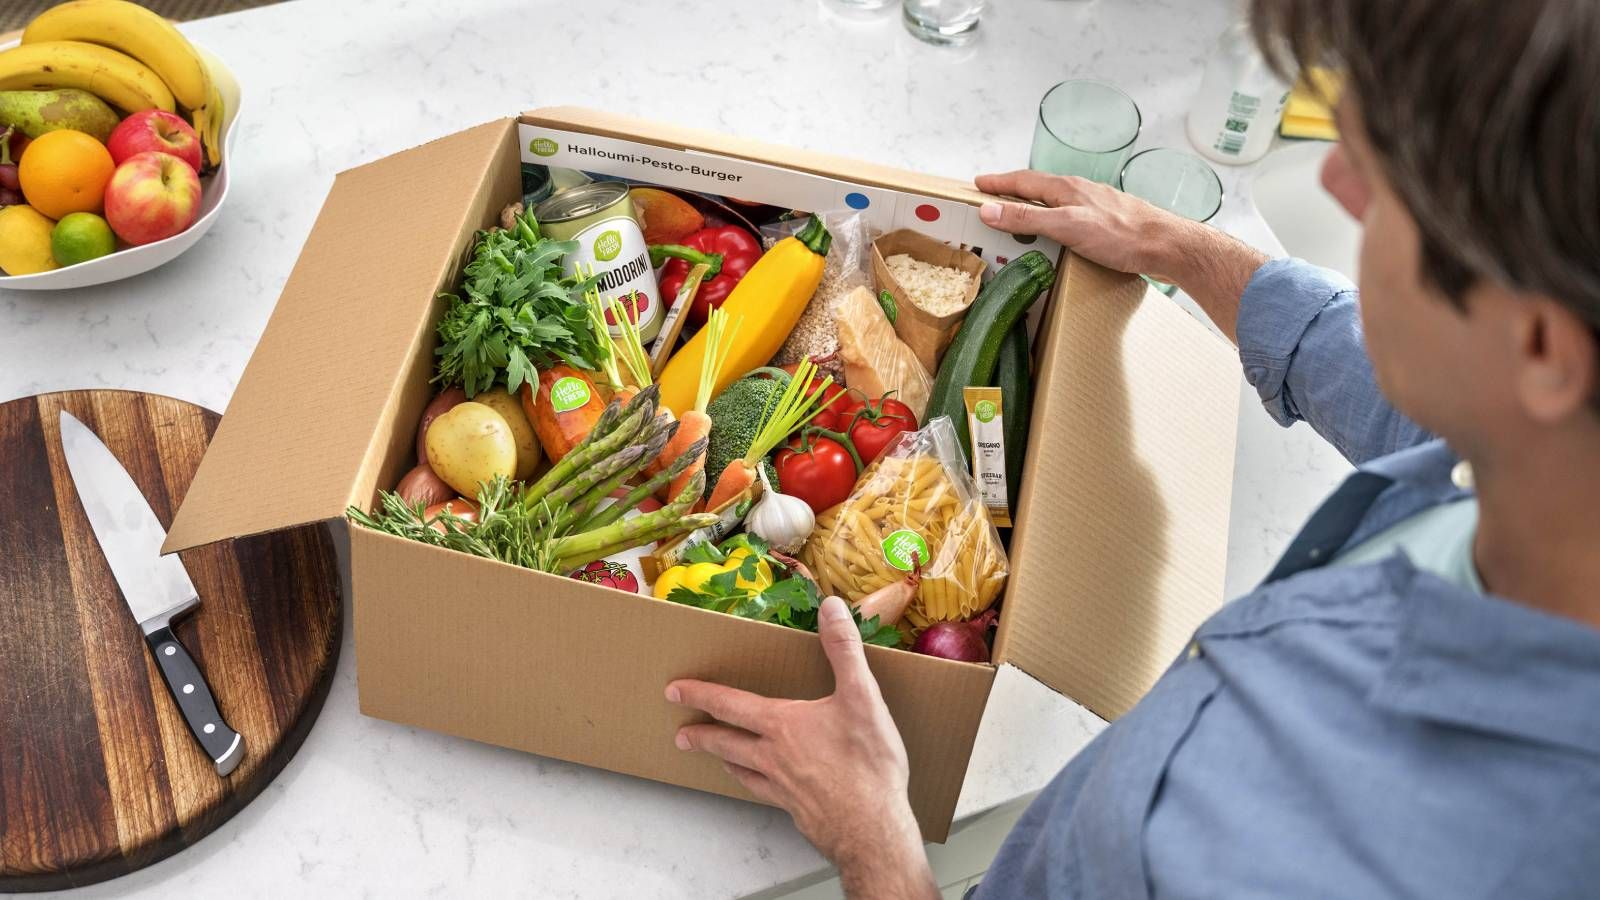 The best online grocery delivery services AmazonFresh vs